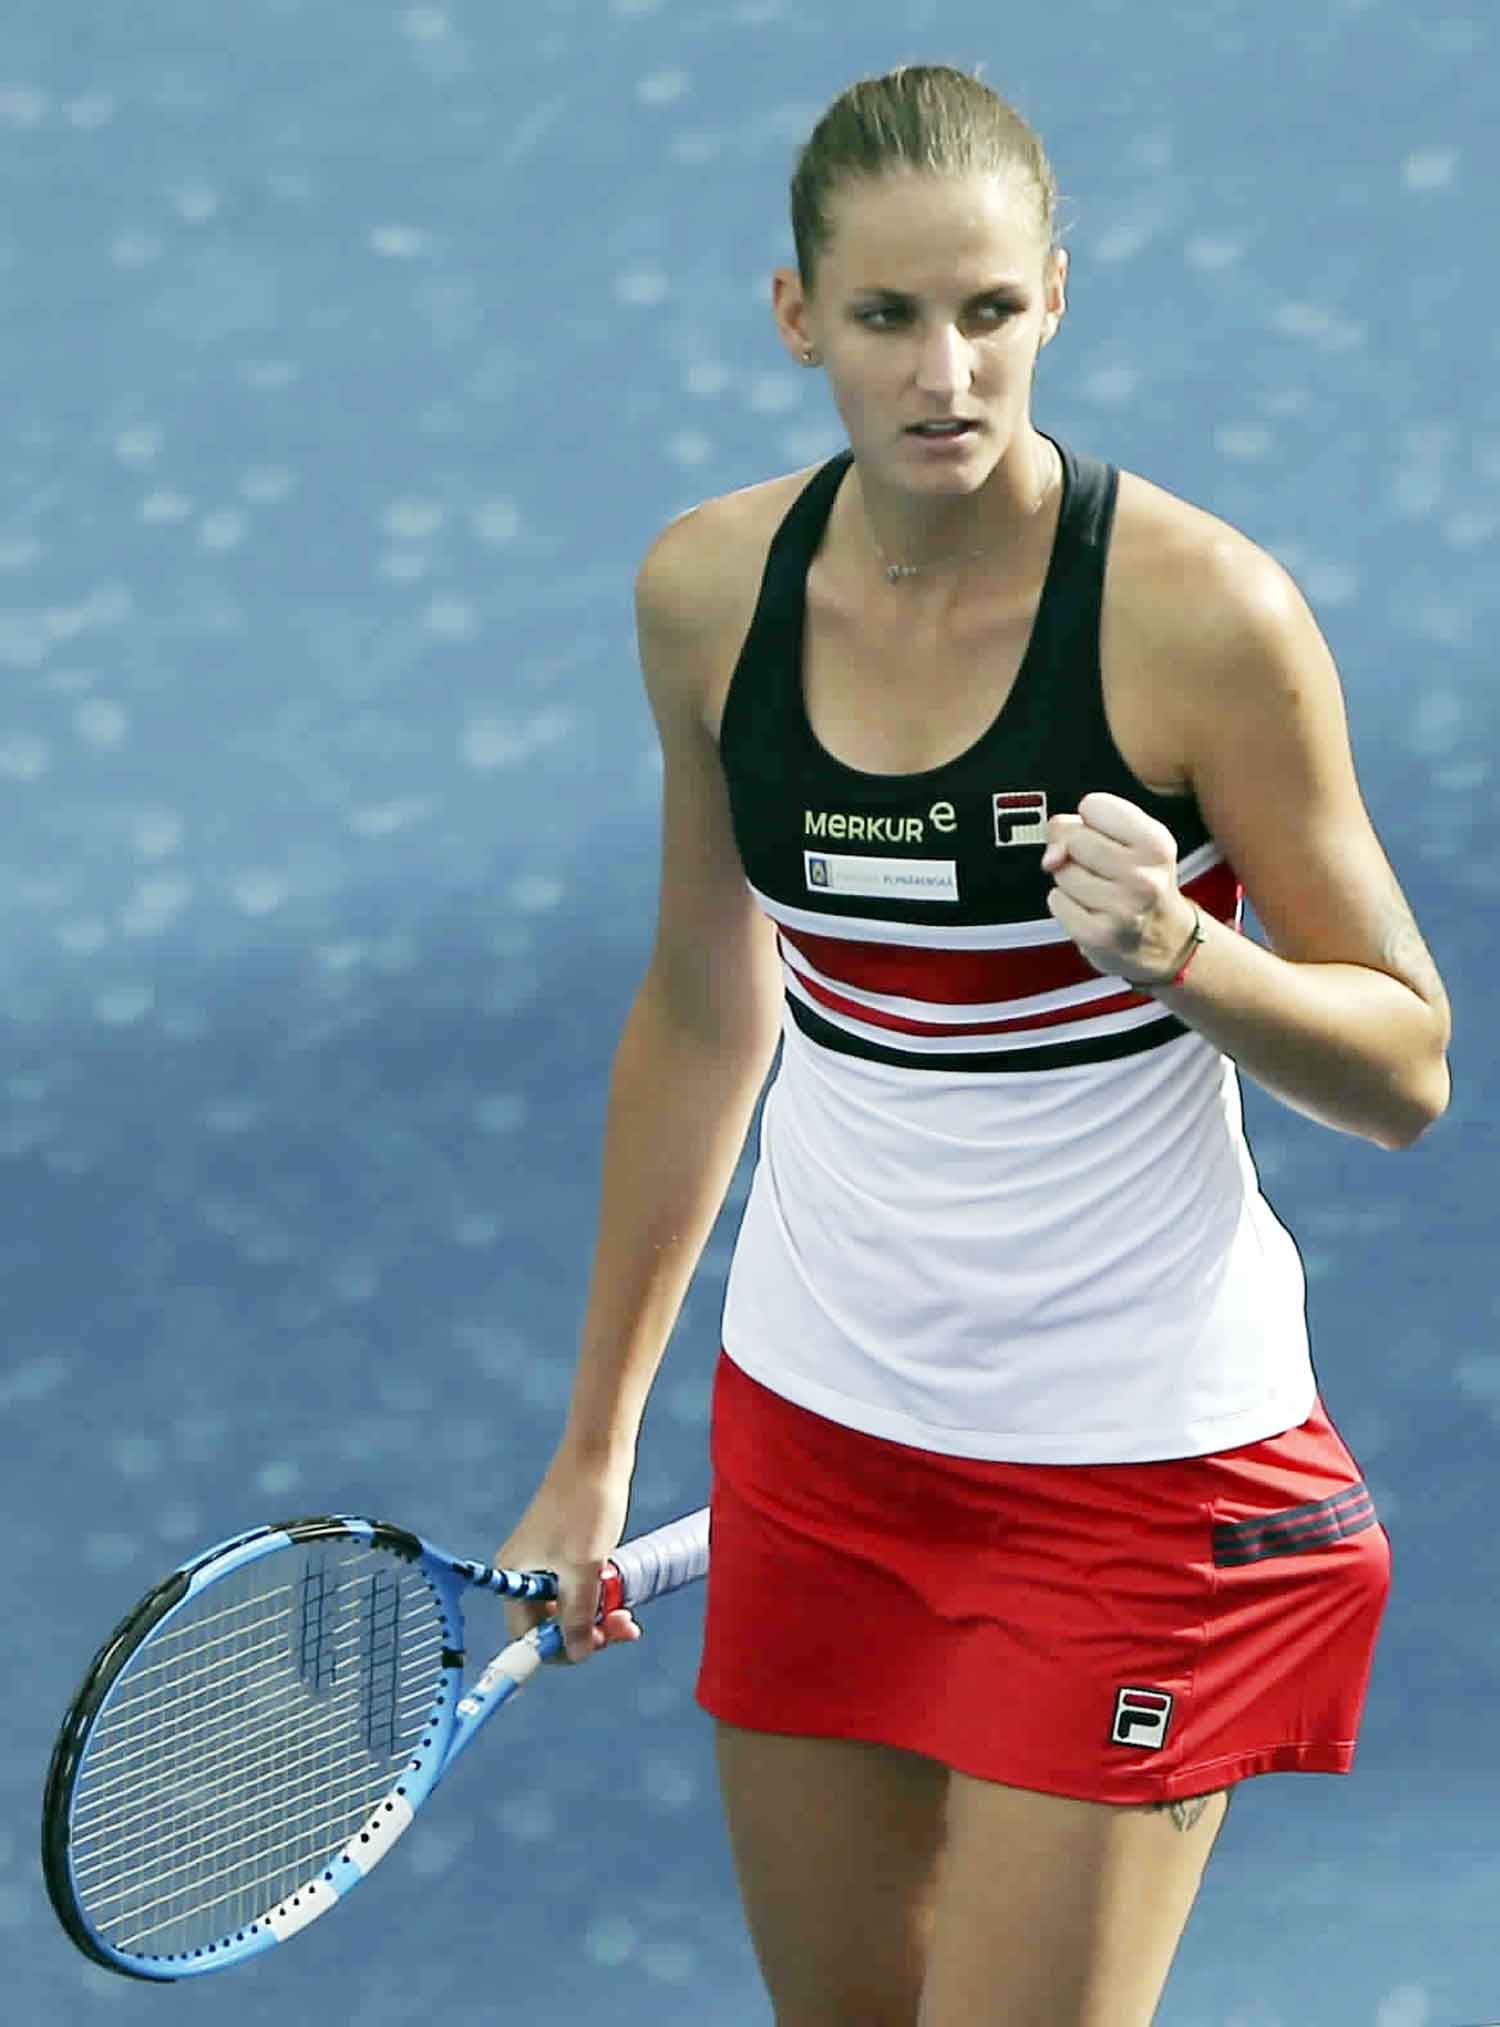 Karolina Pliskova of Czech Republic celebrates after she beats Carla Suarez Navarro of Spain during the Dubai Duty Free Tennis Championship in Dubai, United Arab Emirates on Wednesday.